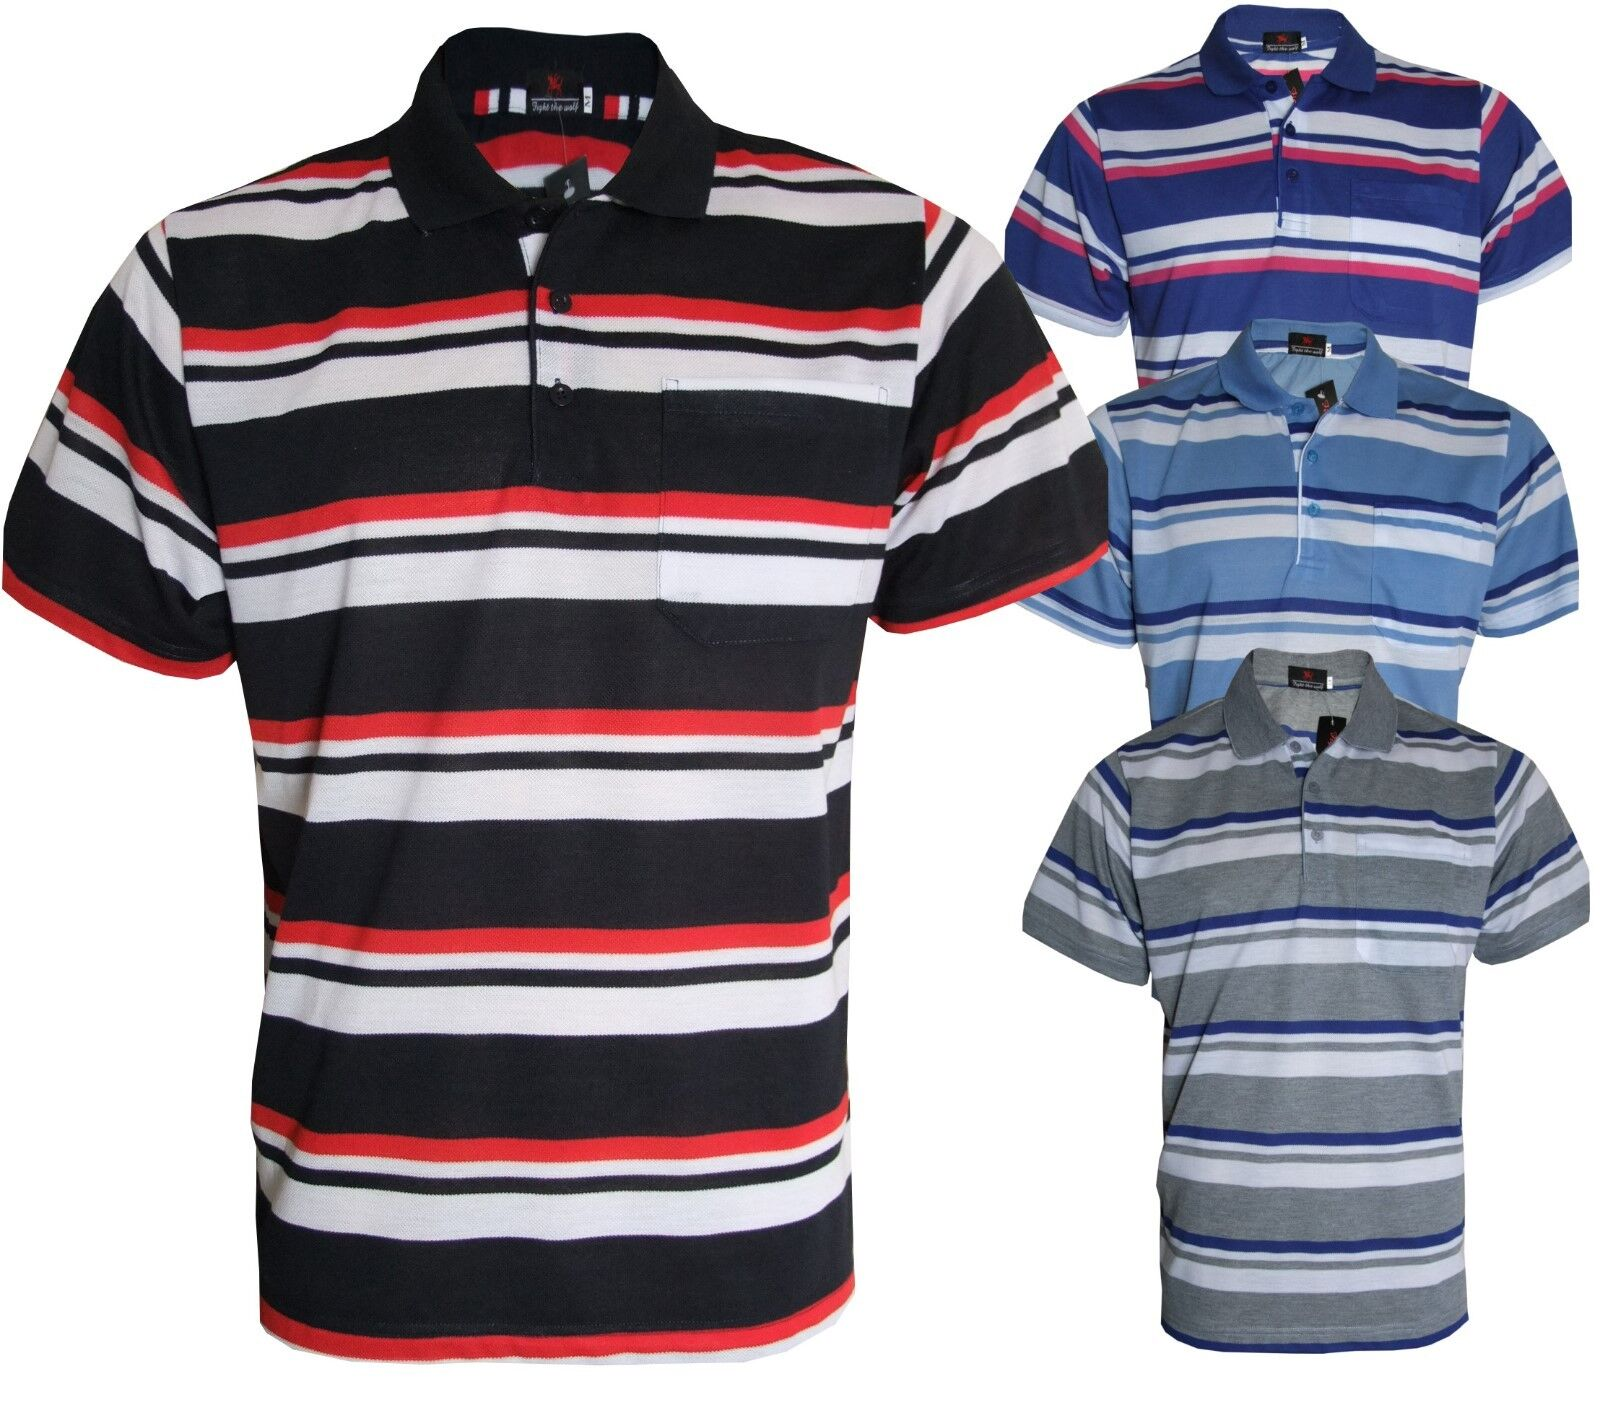 Men/'s Striped Polo T-Shirt Original Classic Loose Fit Pique Casual Tops M to 3XL